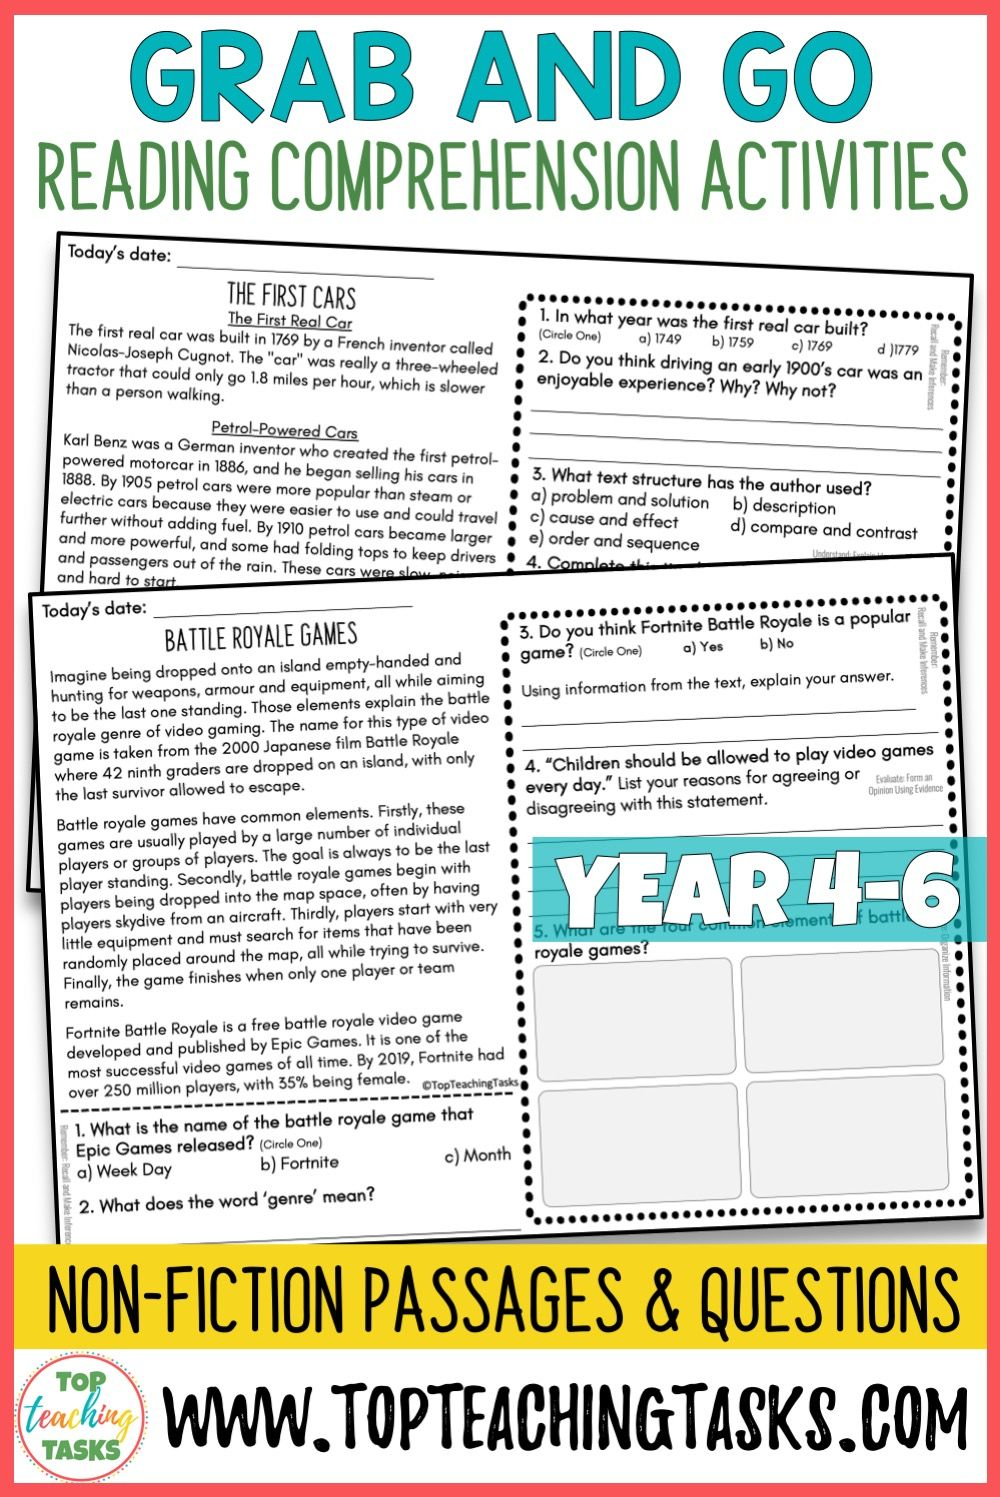 Non Fiction Reading Comprehension Passages And Questions Year 4 5 And 6 Top Teaching Tasks Reading Comprehension Reading Comprehension Passages Comprehension Passage [ 1497 x 1000 Pixel ]